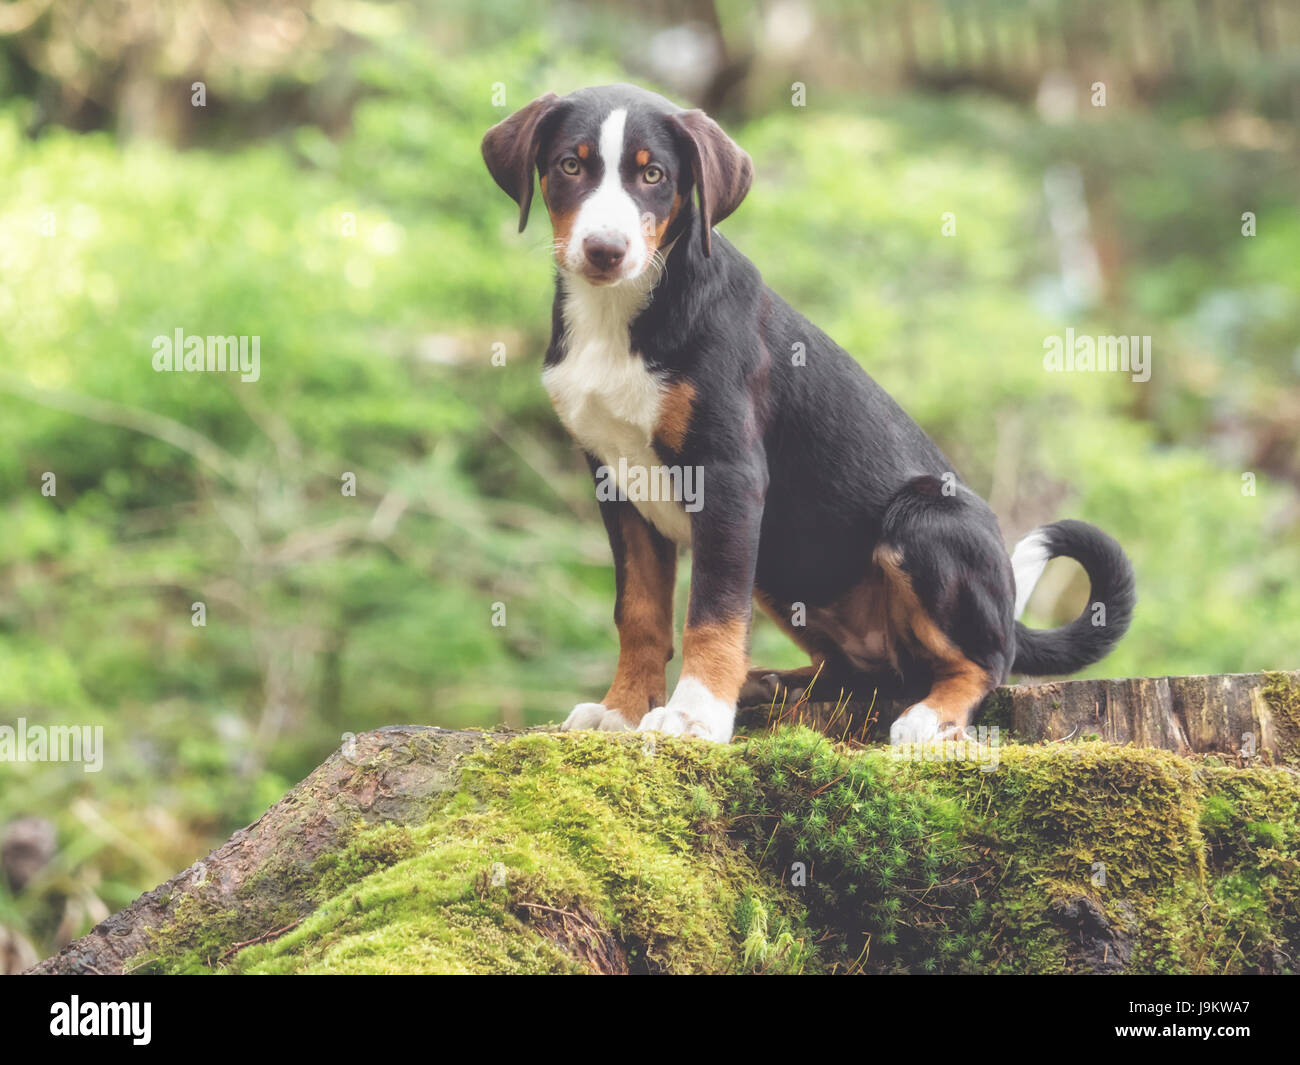 Appenzell puppy sitting and waiting - Stock Image